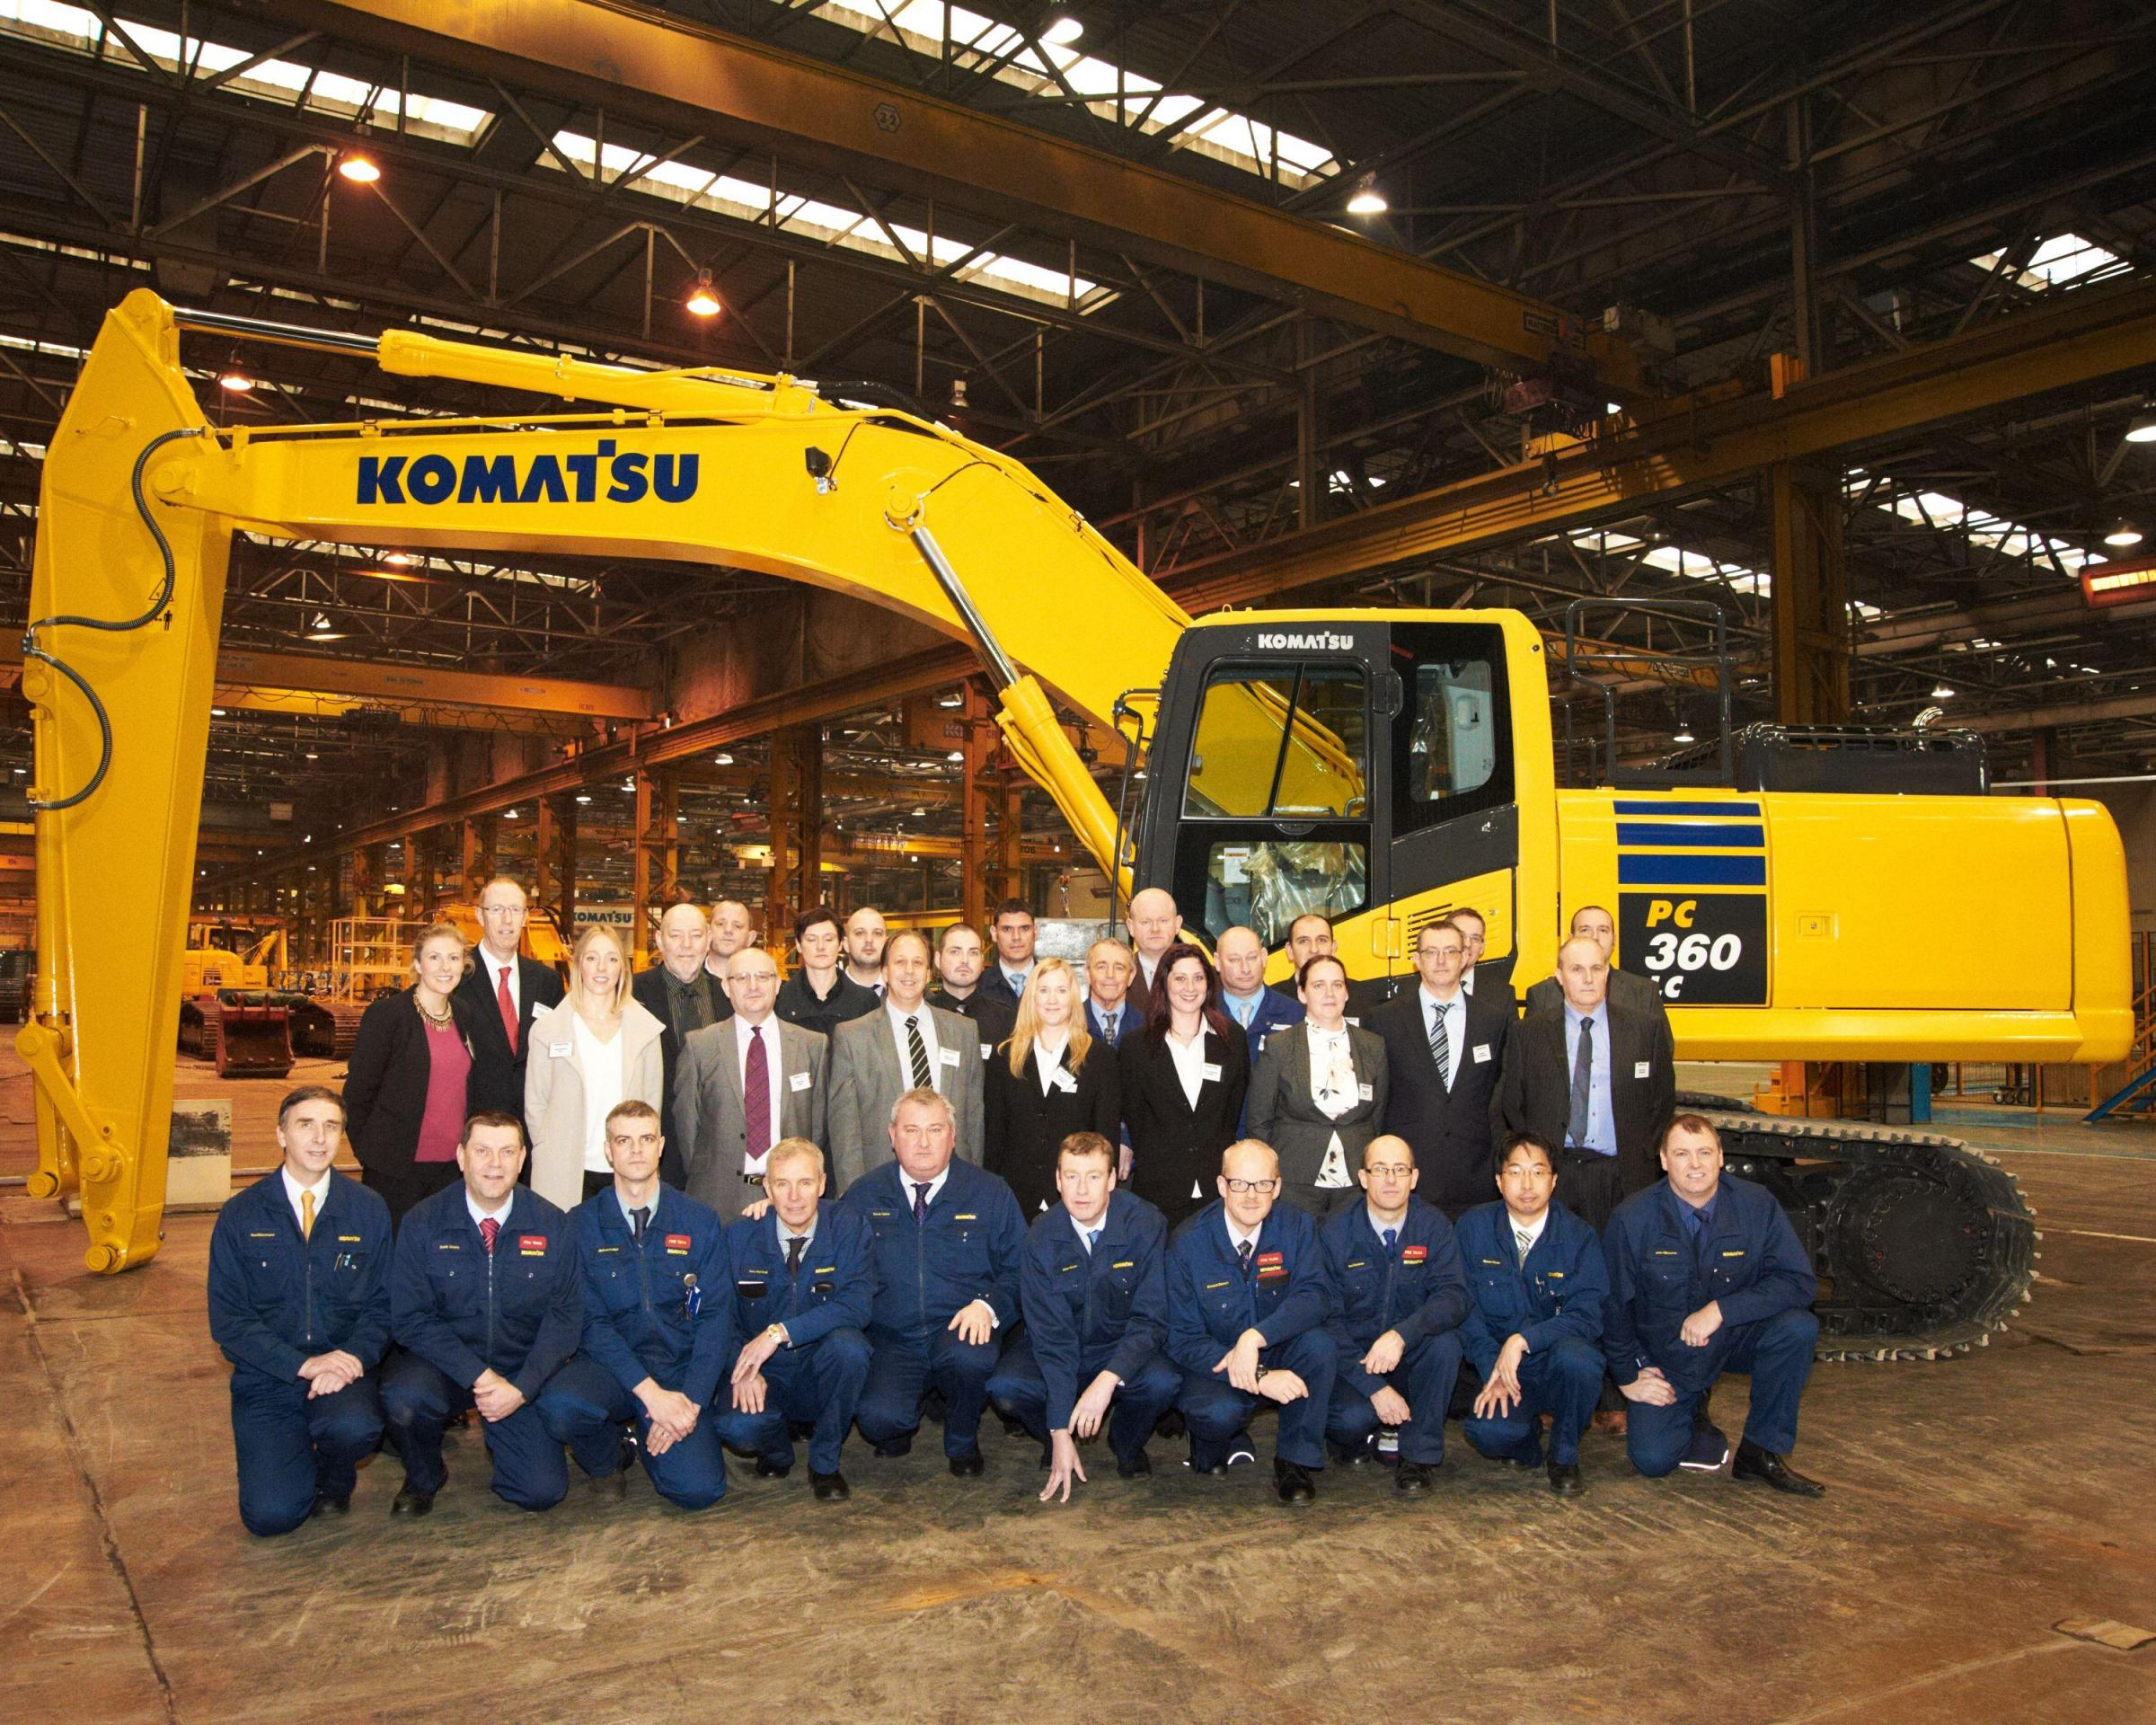 Komatsu UK workers and supply chain representatives, who helped with the US